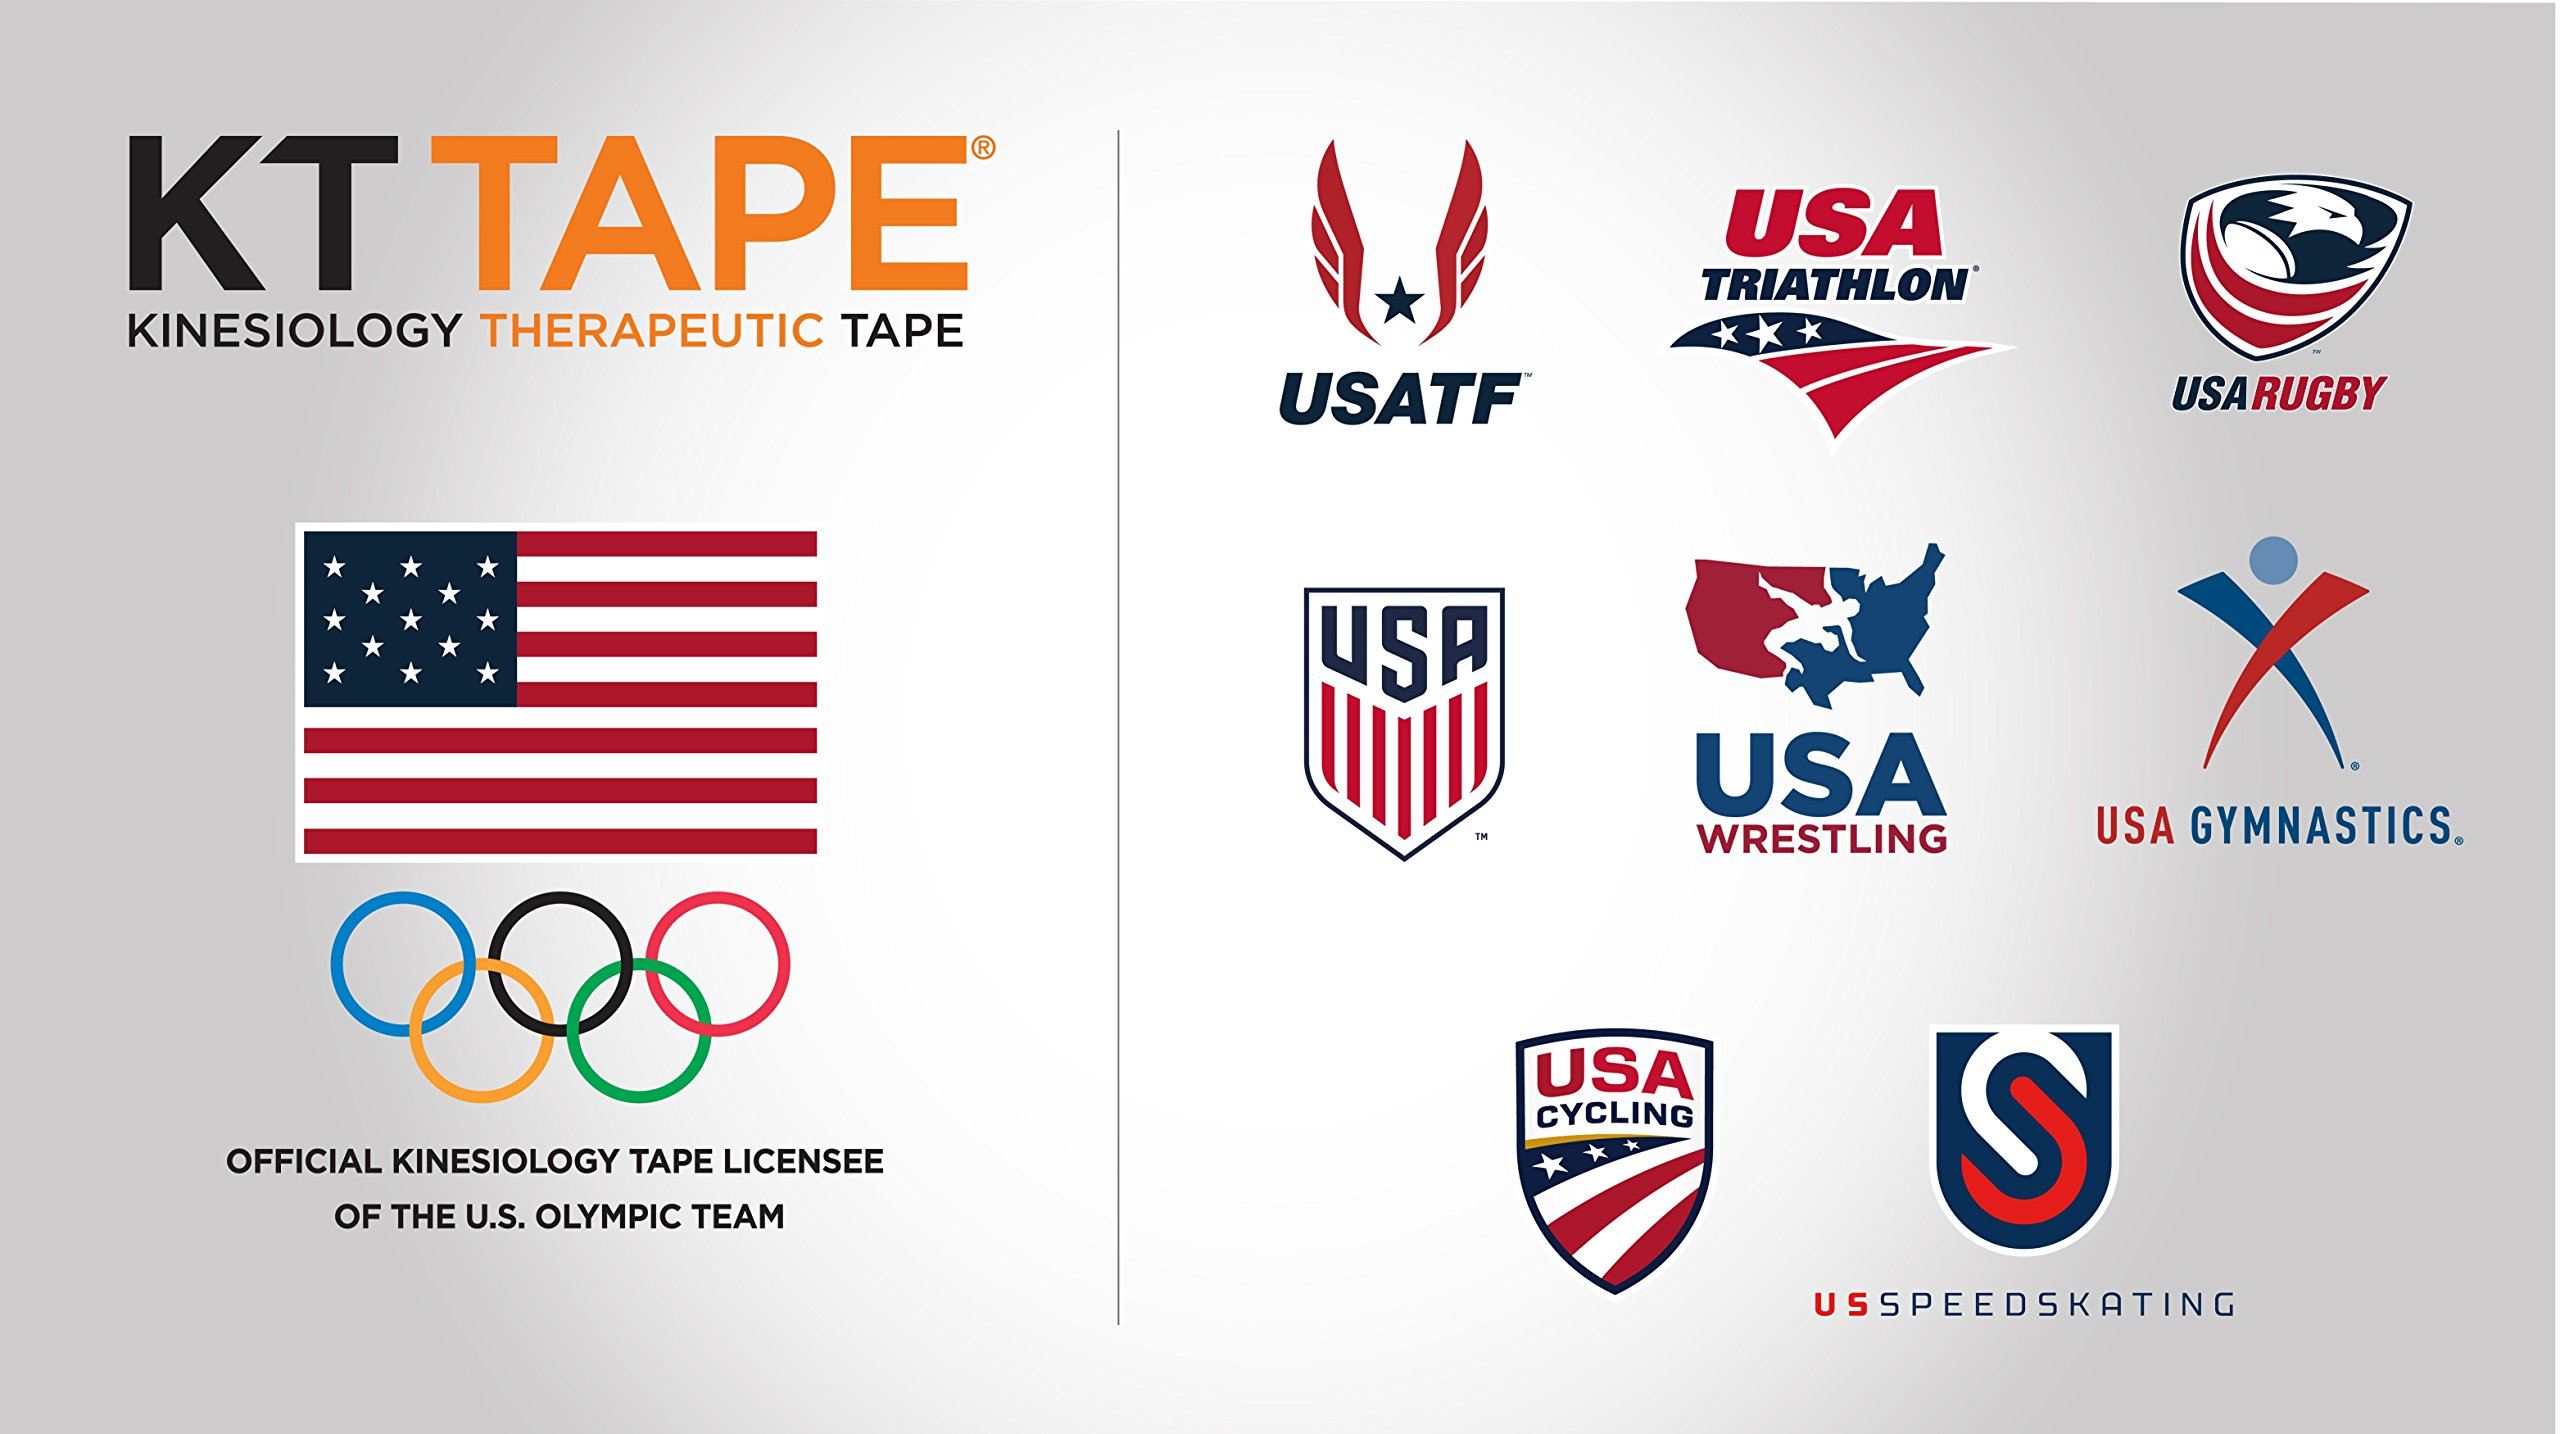 KT Tape PRO Synthetic Kinesiology Sports Tape, Water Resistant and Breathable, 20 Precut 10 Inch Strips, Team USA Olympic Edition, Black (Packaging May Vary) by KT Tape (Image #4)